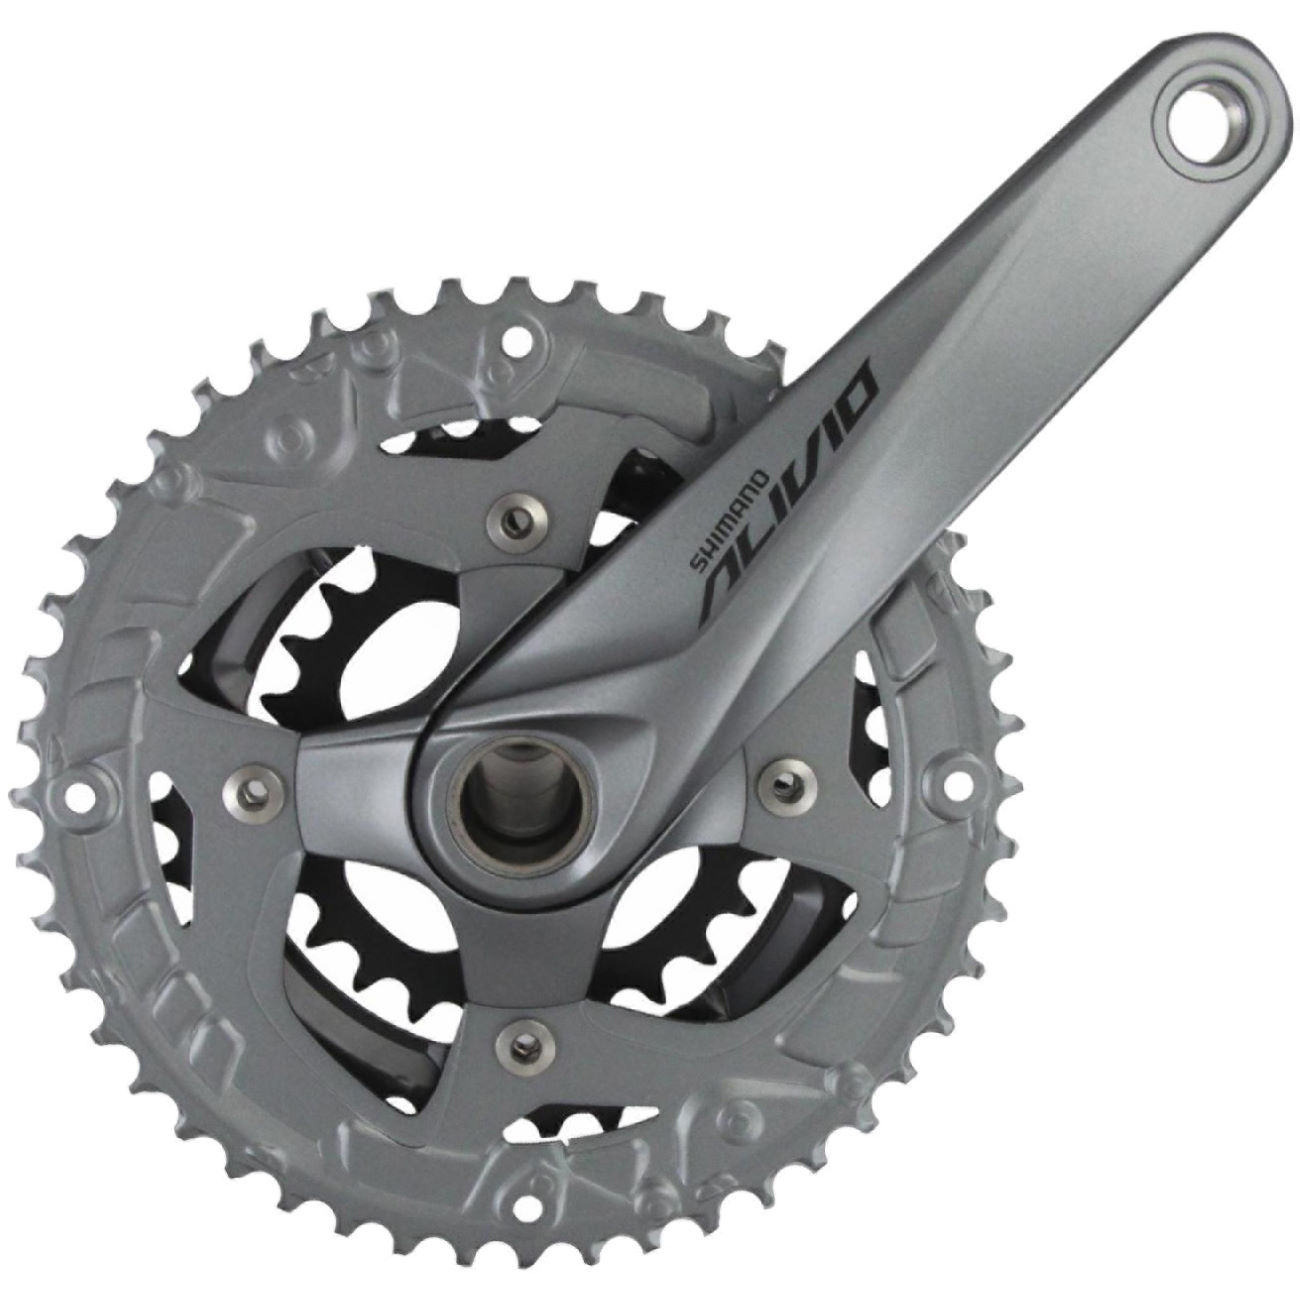 Wiggle Cycle To Work Shimano Alivio M4060 9 Speed Triple Chainset Groupset M4000